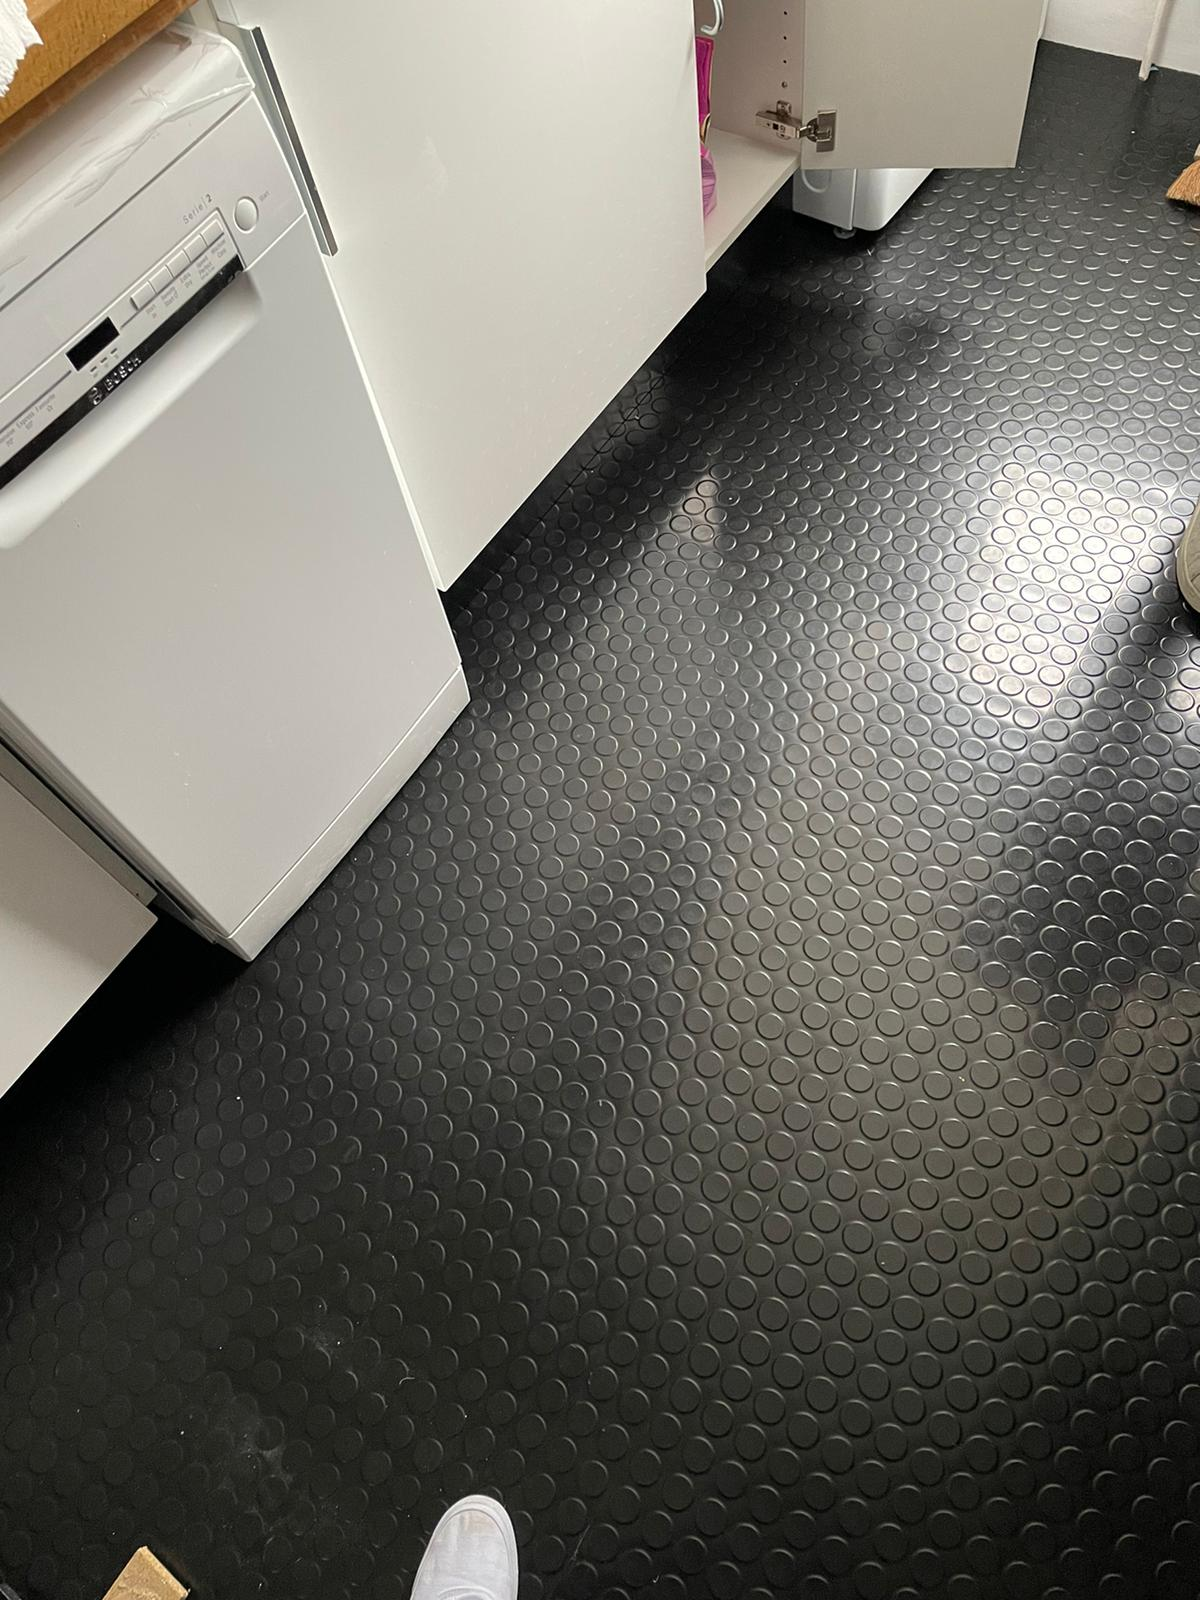 Nora Rubber Flooring Norament 926 0354 Rubber Flooring in Kings Cross 1